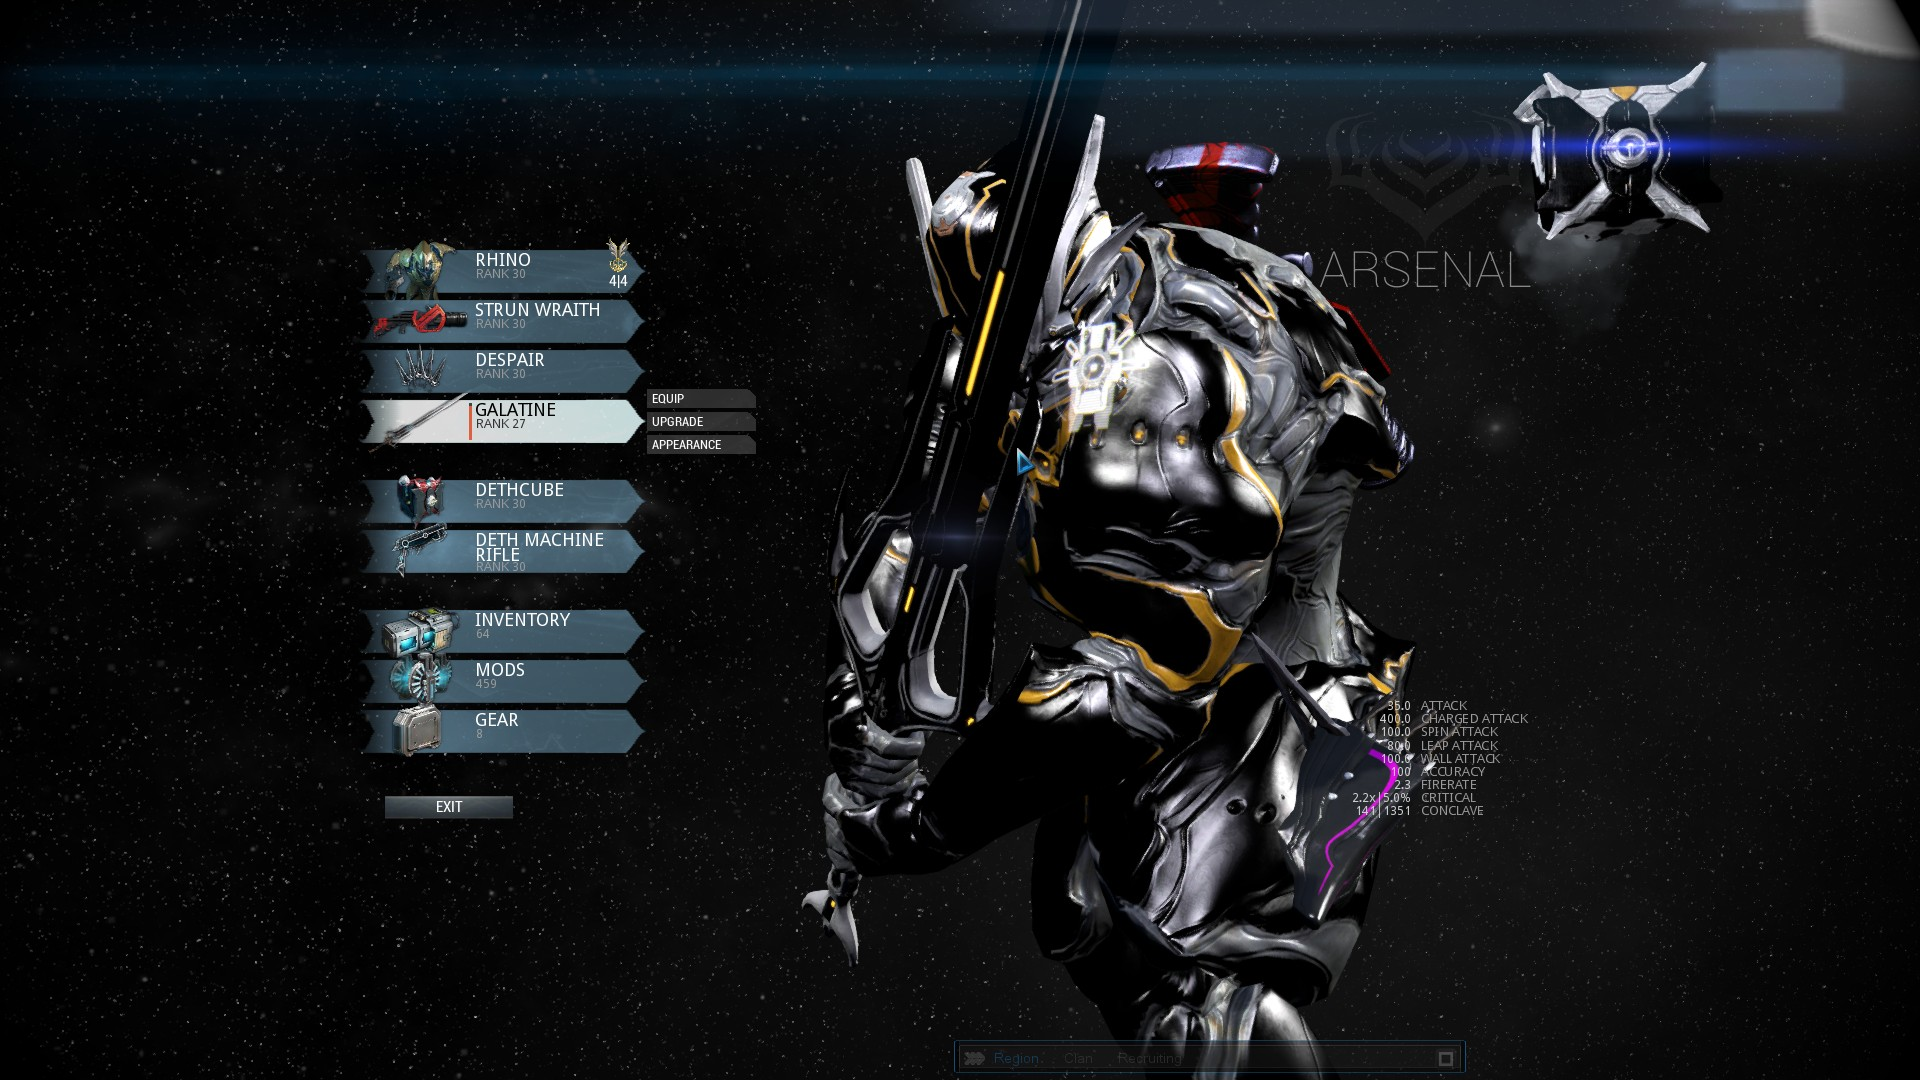 Warframe best weapons 2015 - Offensive Loadouts Perfectly Compliment Rhino Choose Large 2h Weapons High Burst Weapons